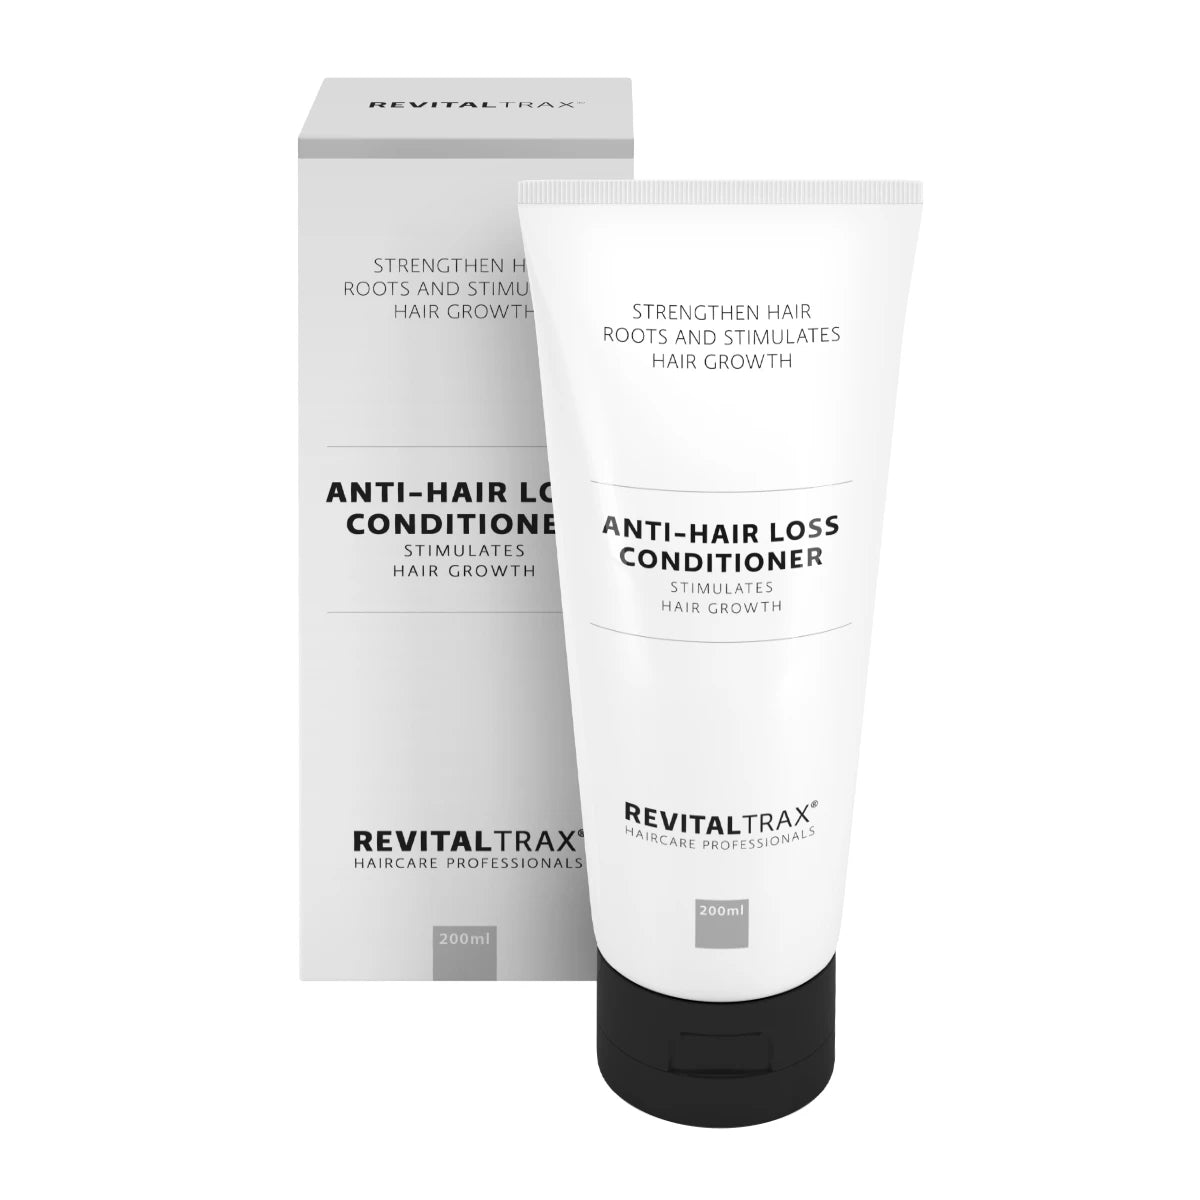 RevitalTrax Anti-Hair Loss Conditioner.